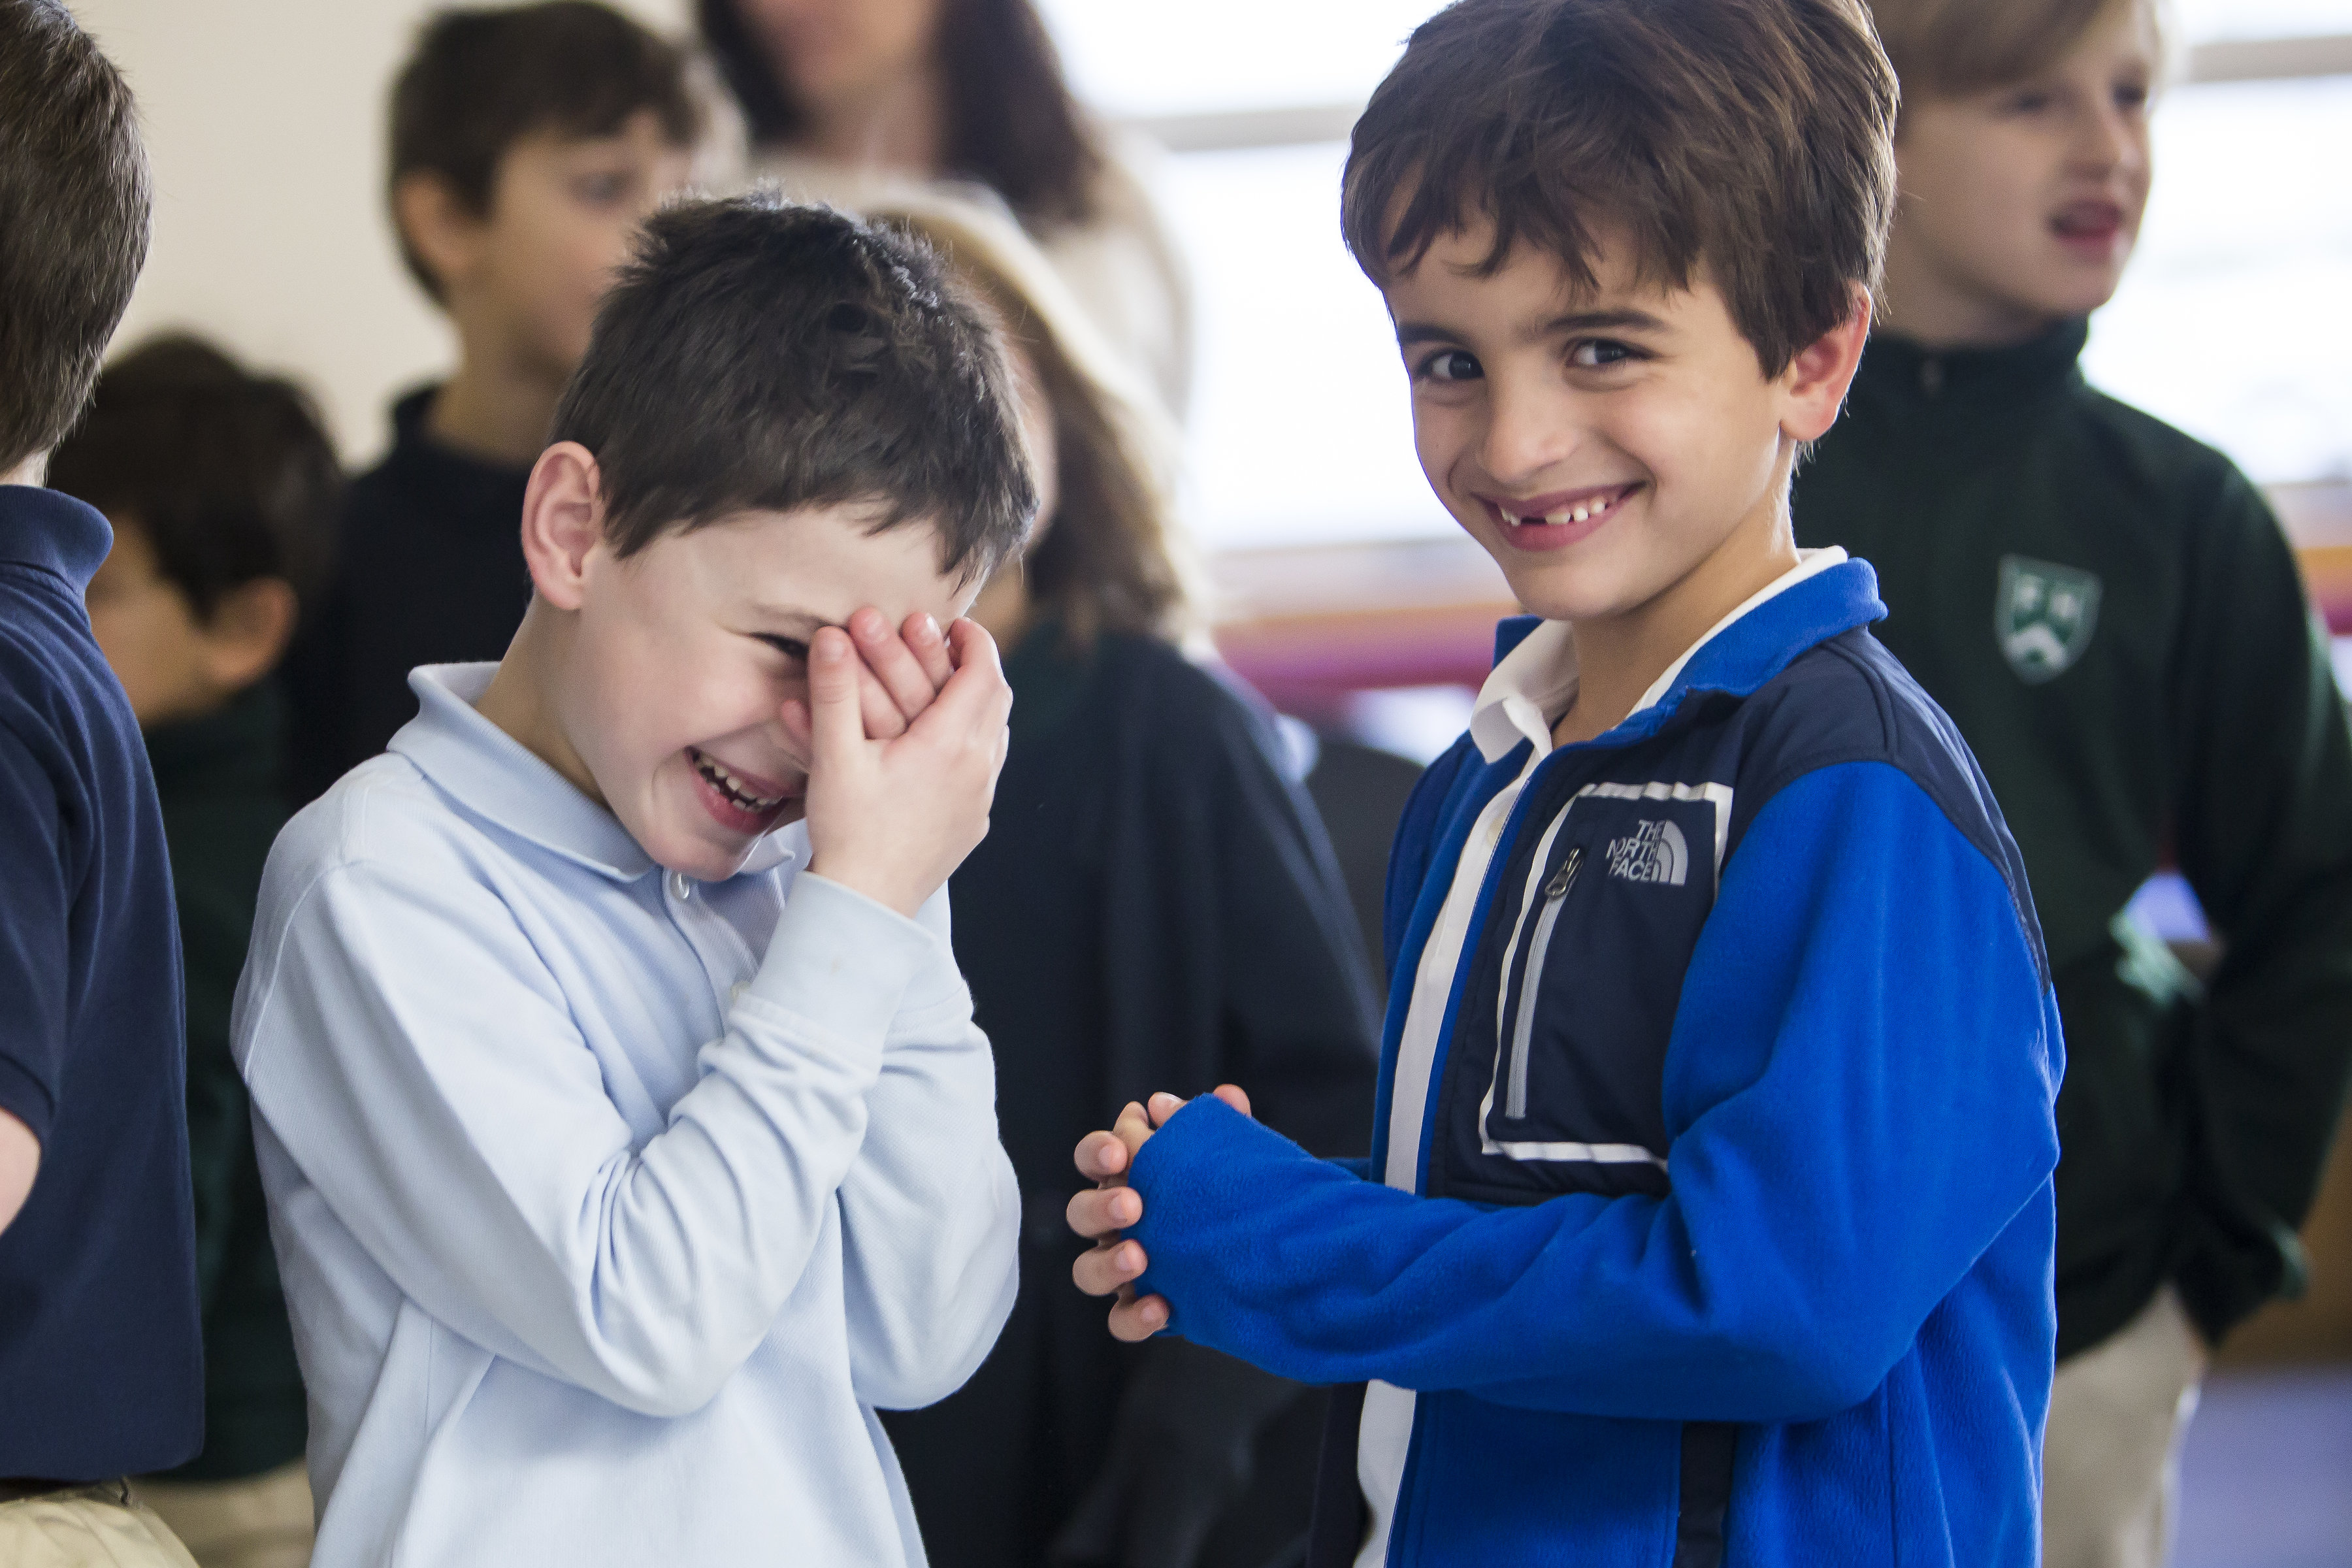 Boy students laughing